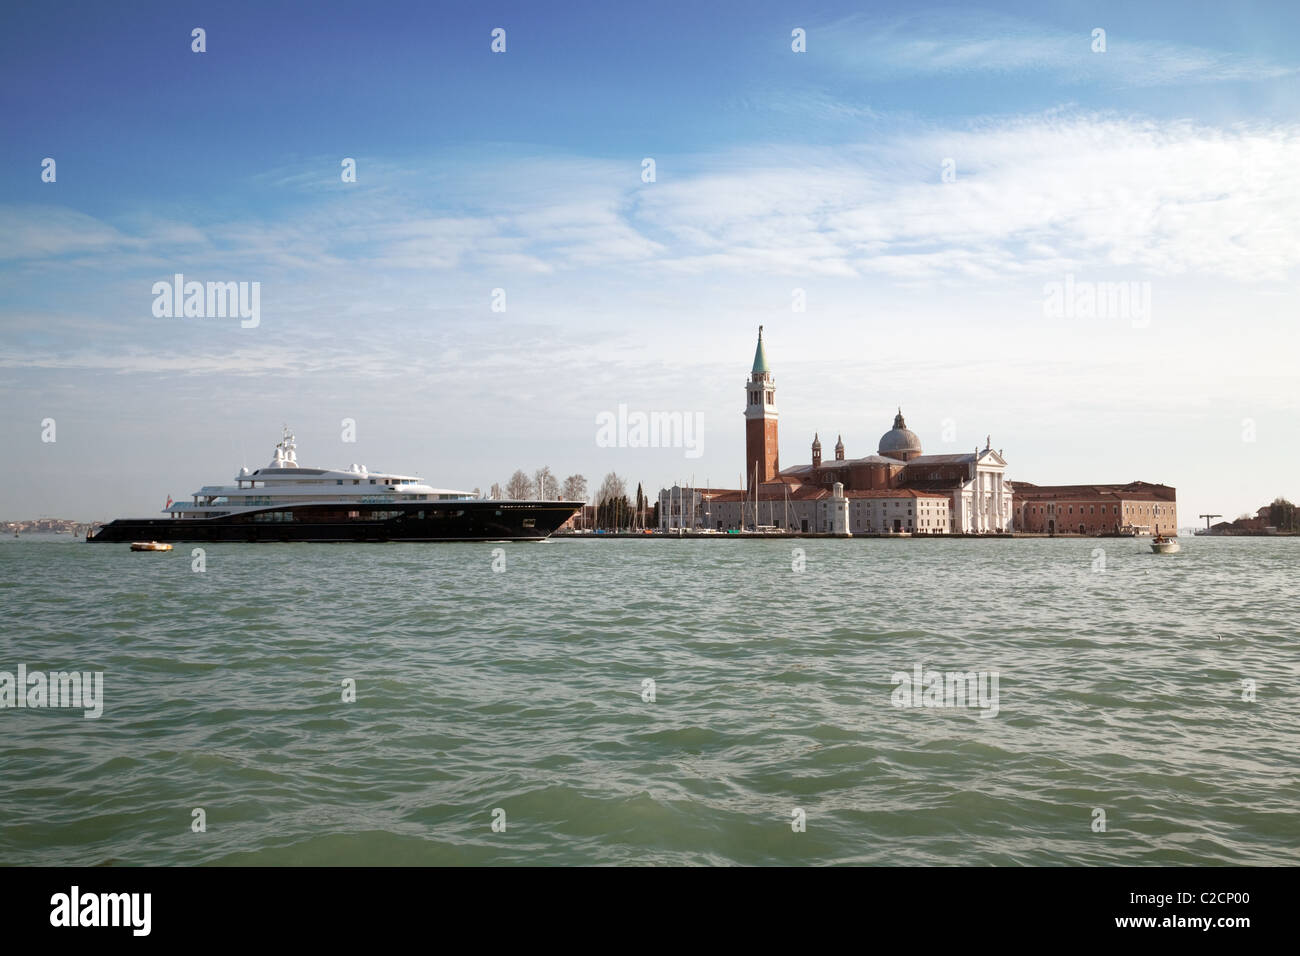 An expensive yacht passes the Lido, Venice Italy - Stock Image